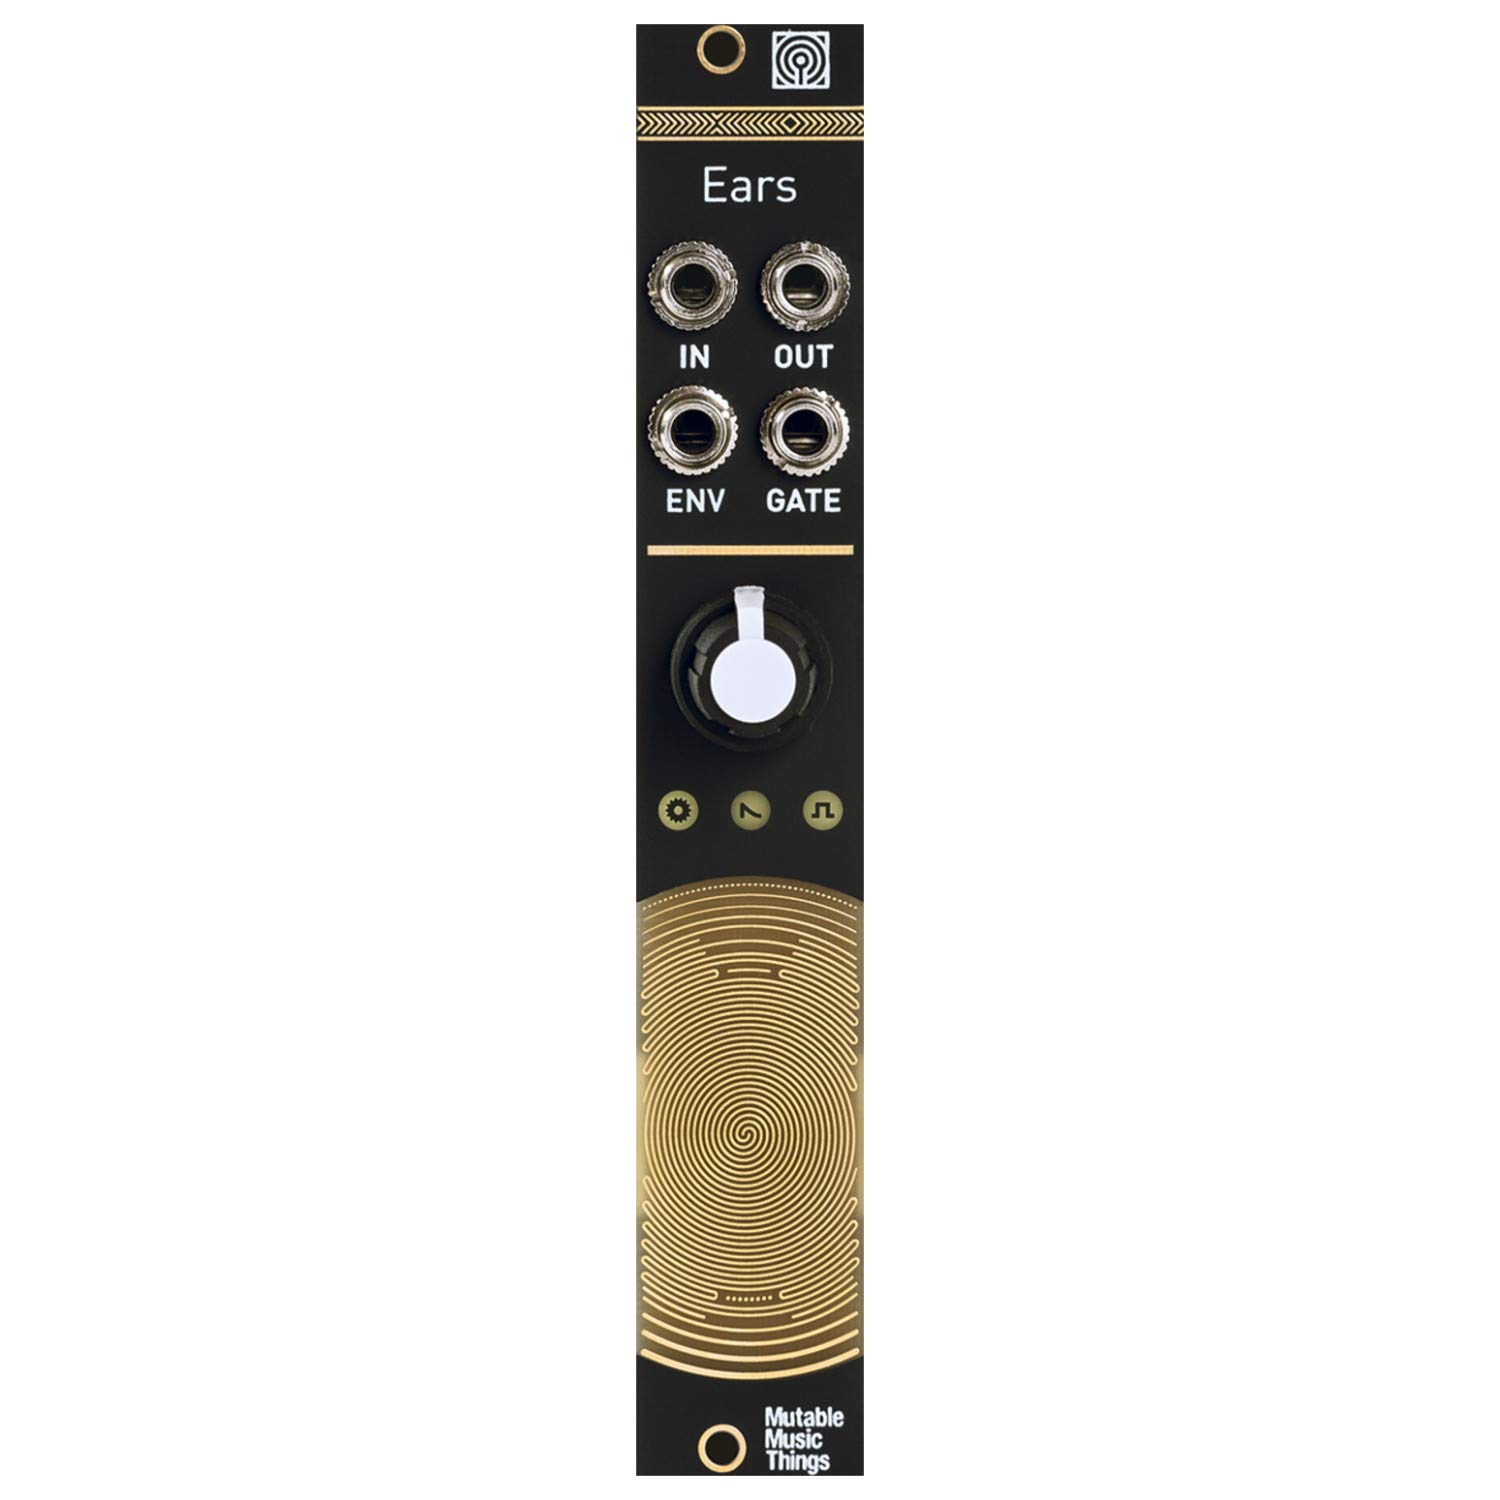 Mutable Instruments Ears Contact Microphone Eurorack Synth Module by Mutable Instruments